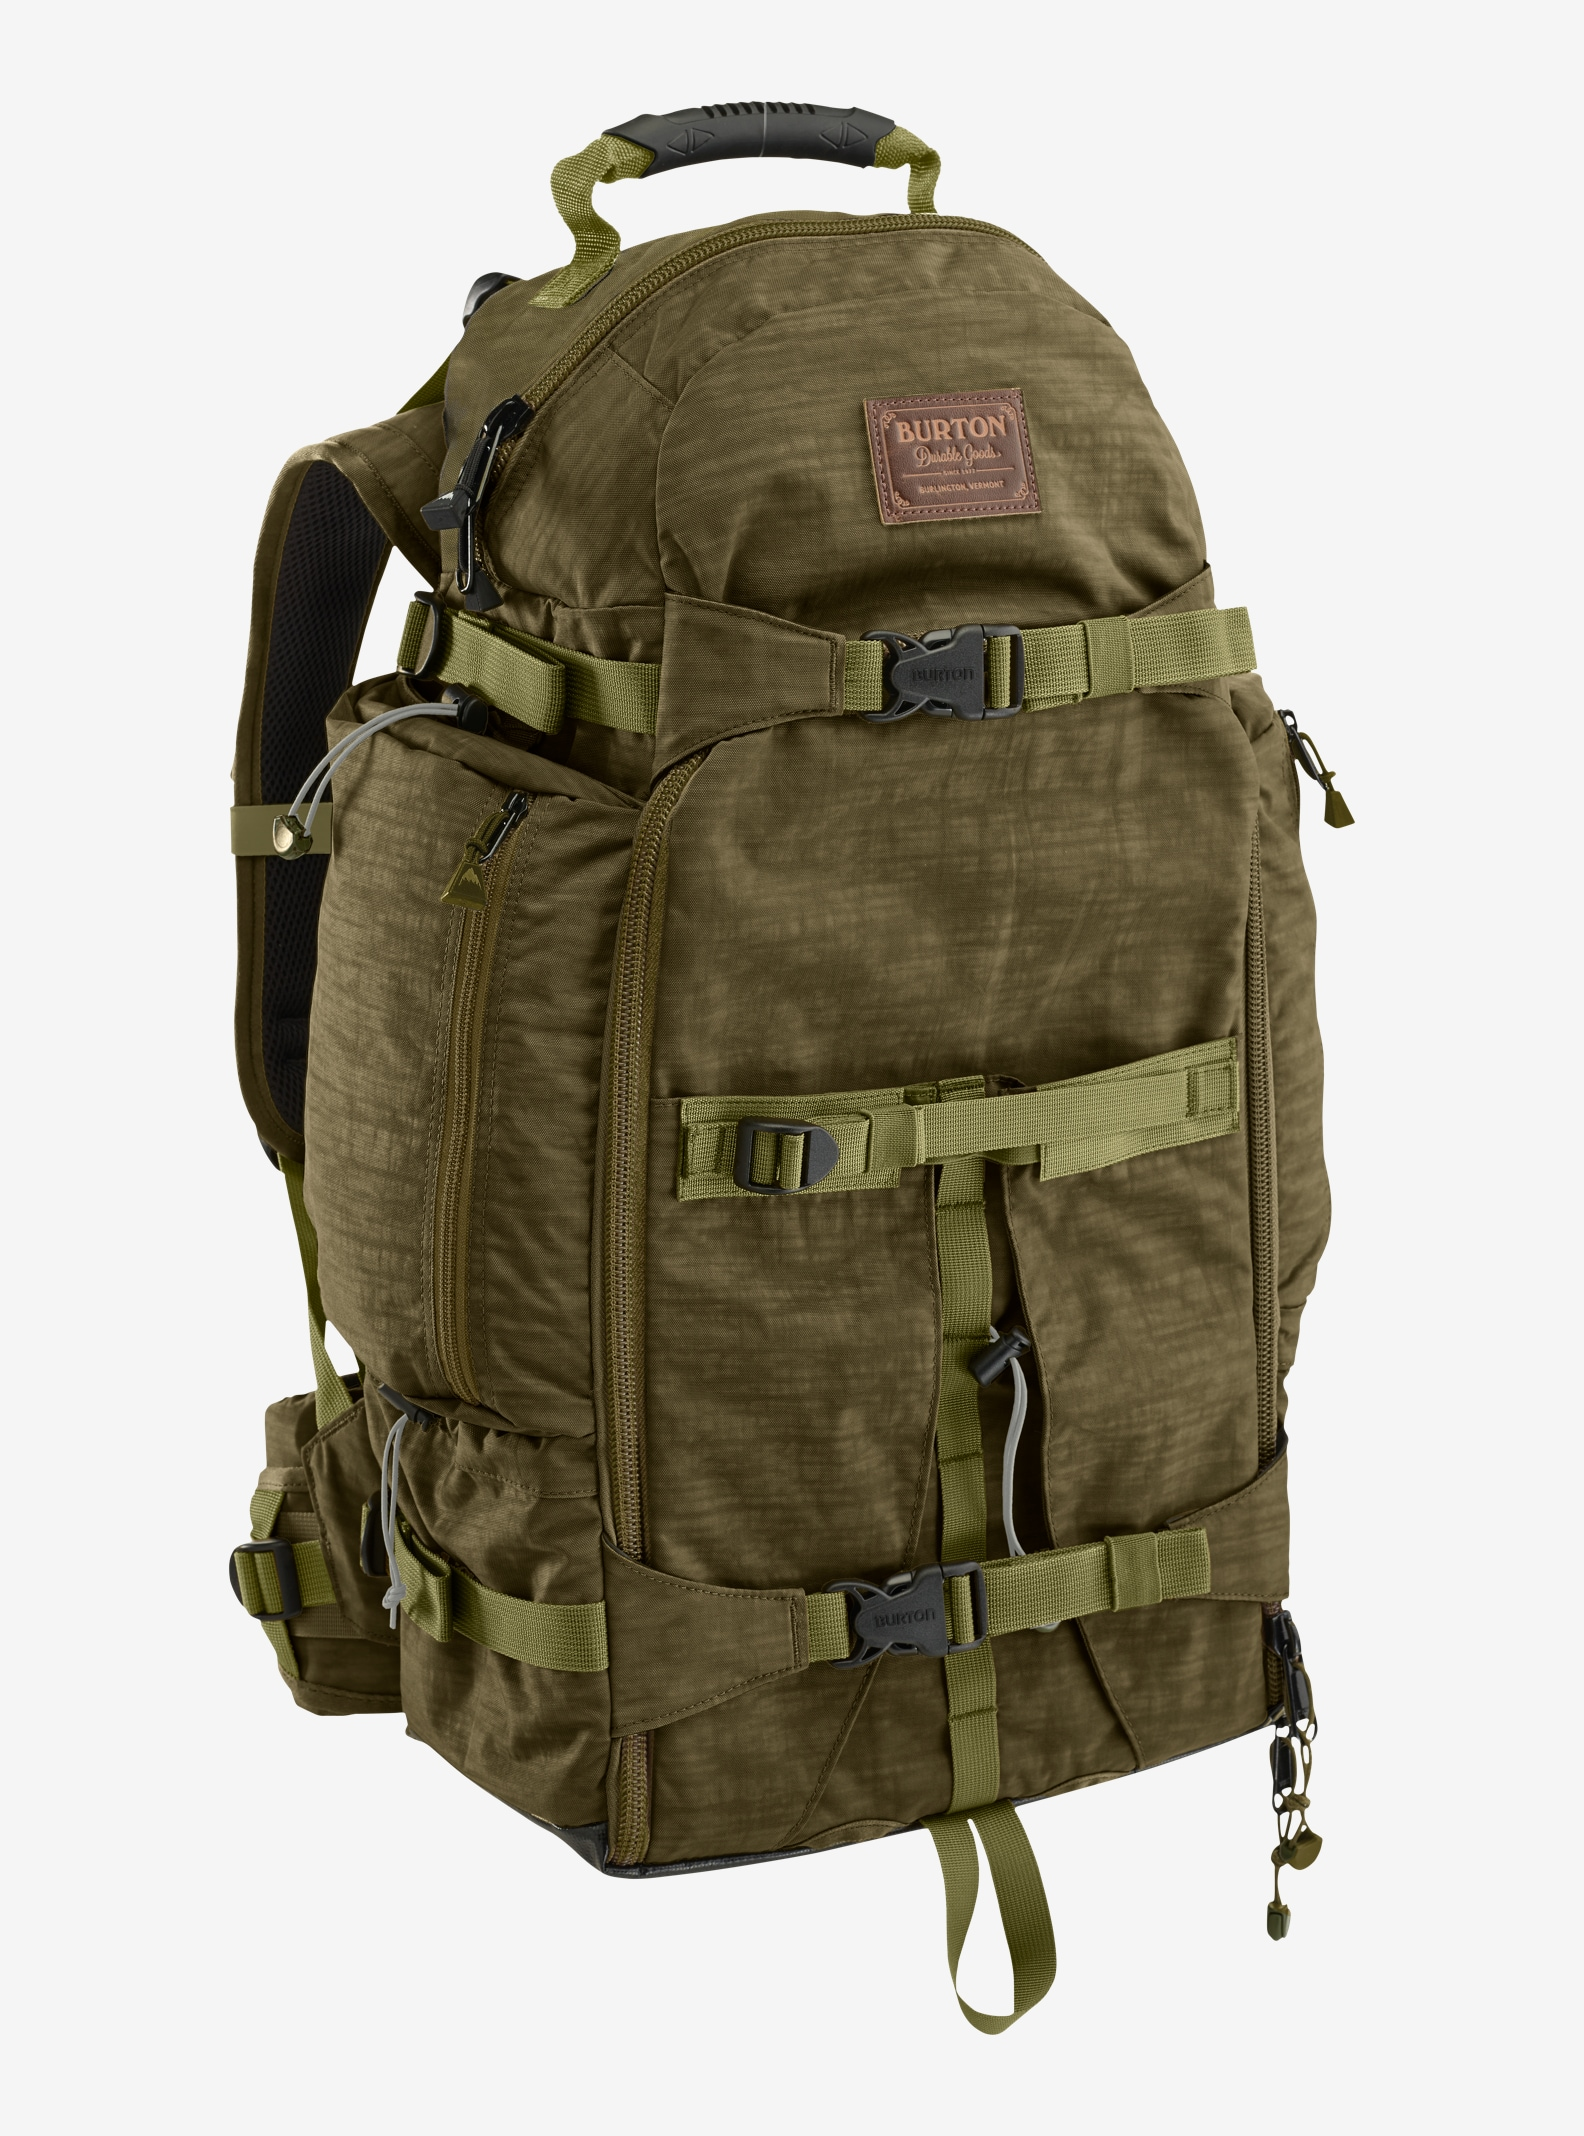 Burton F-Stop 28L Backpack shown in Drab Crinkle